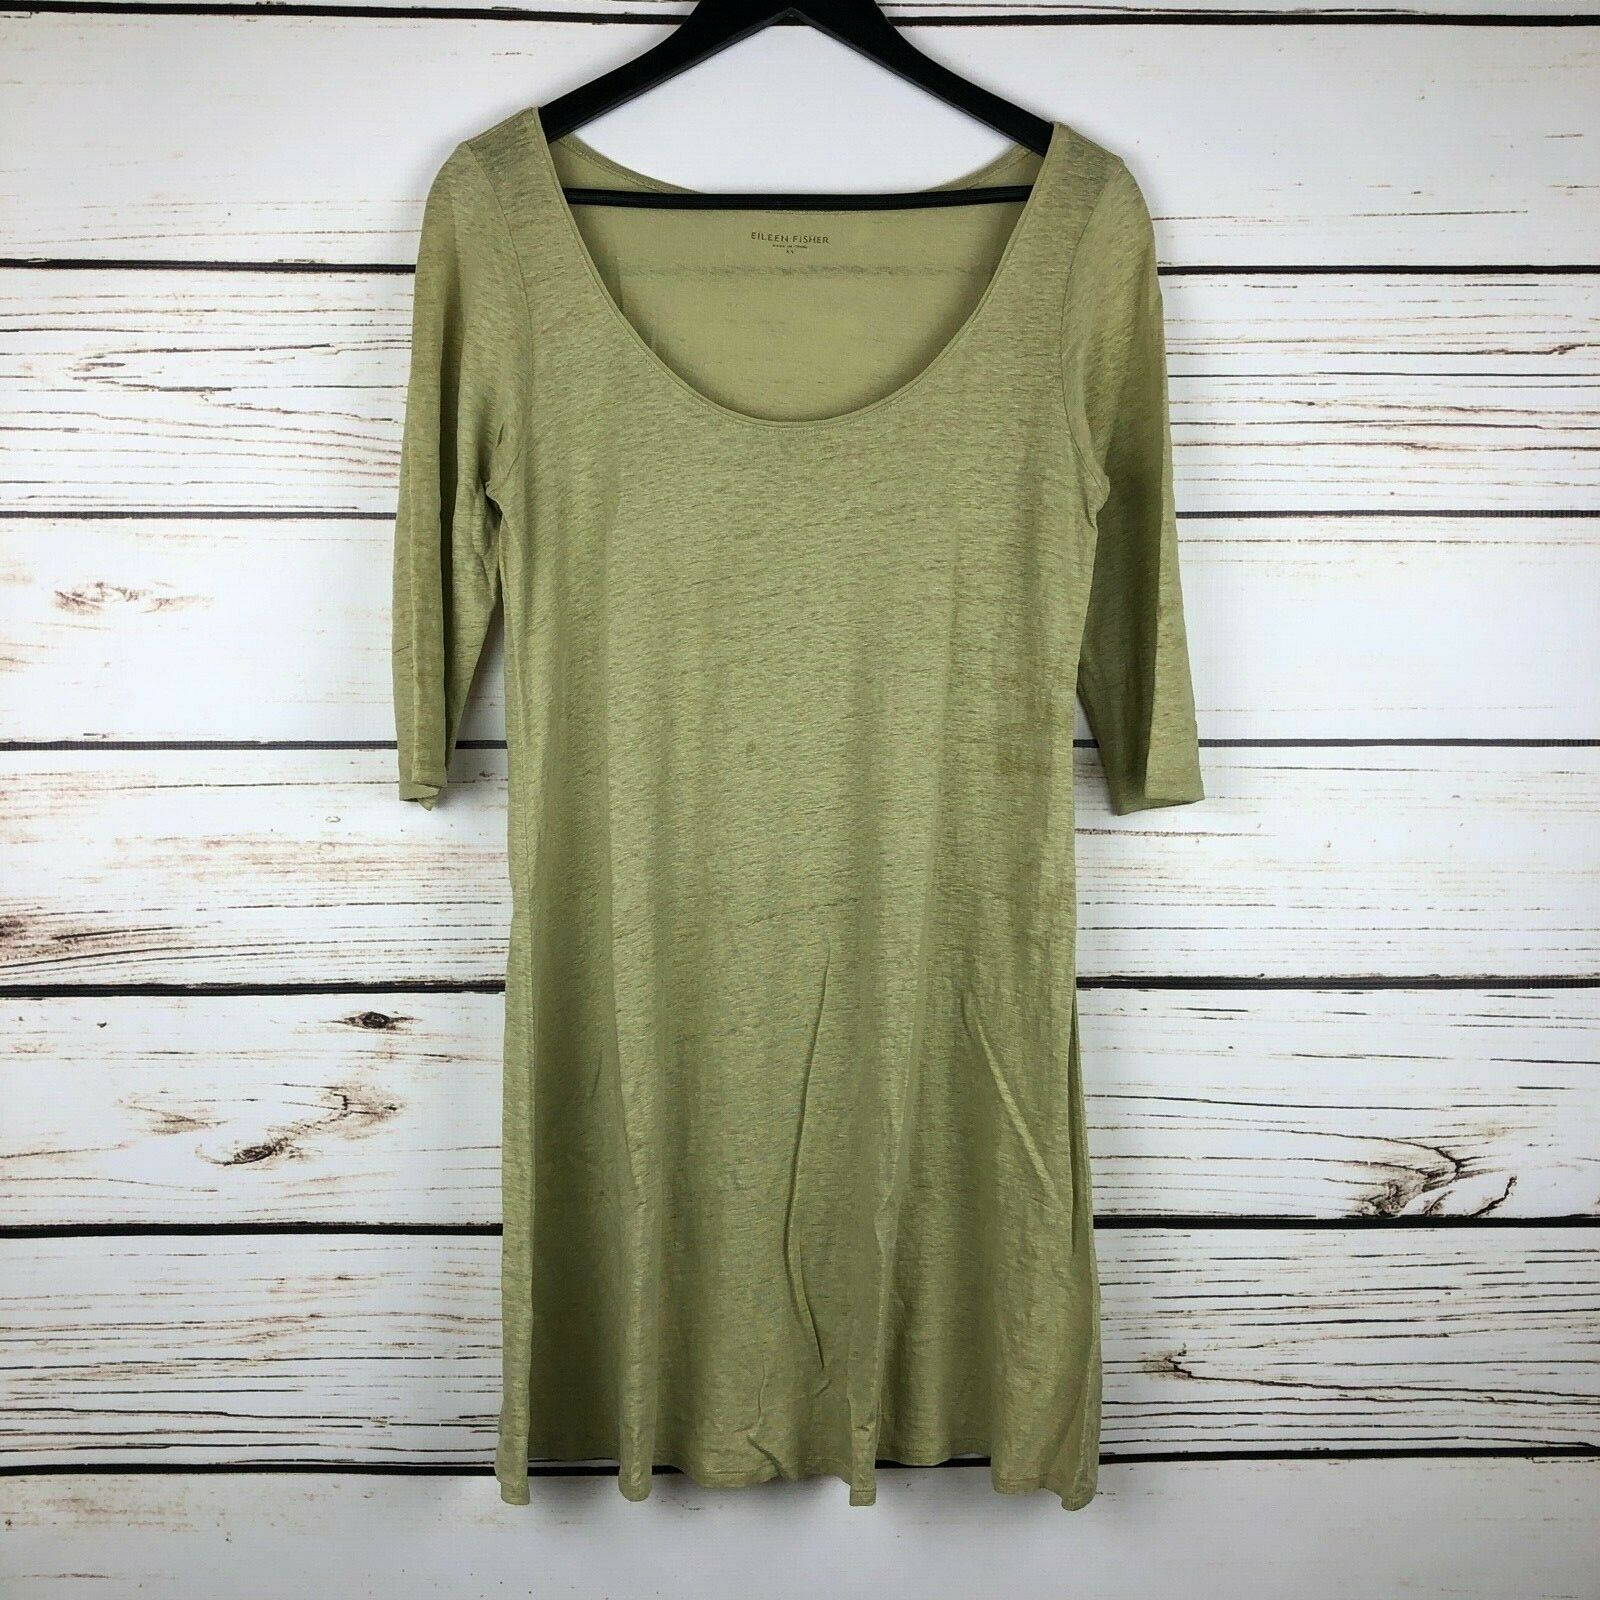 Eileen Fisher Dress 100% Linen 3/4 Sleeve Scoop Neck Olive Green Size XS